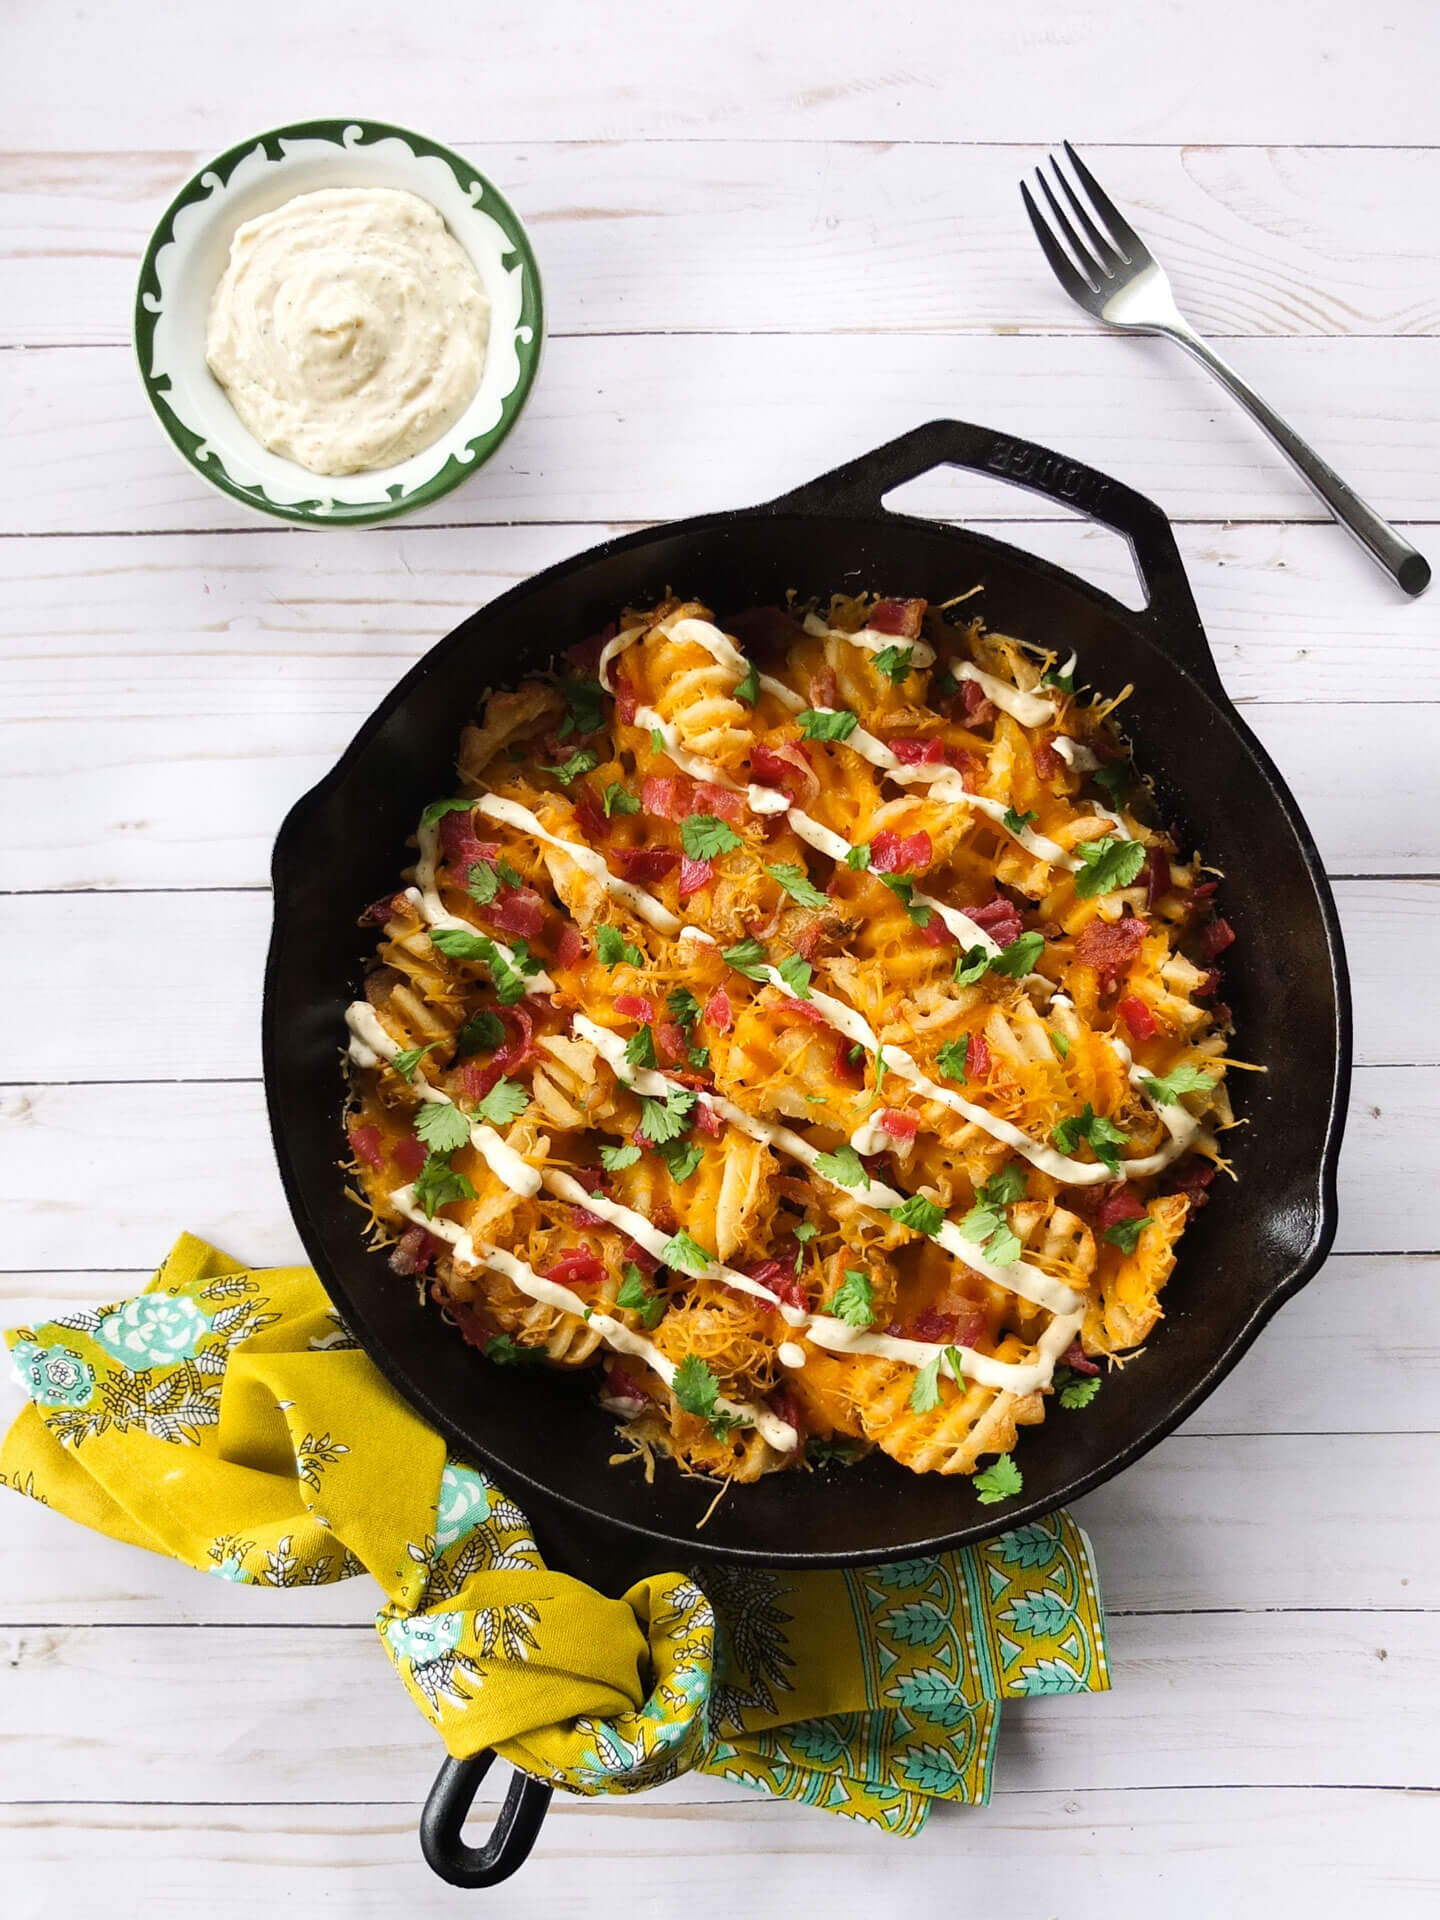 Bacon and Cheddar Loaded Fries served with a easy to make Garlic Aioli. The perfect pub food for a St. Patrick's Day appetizer.